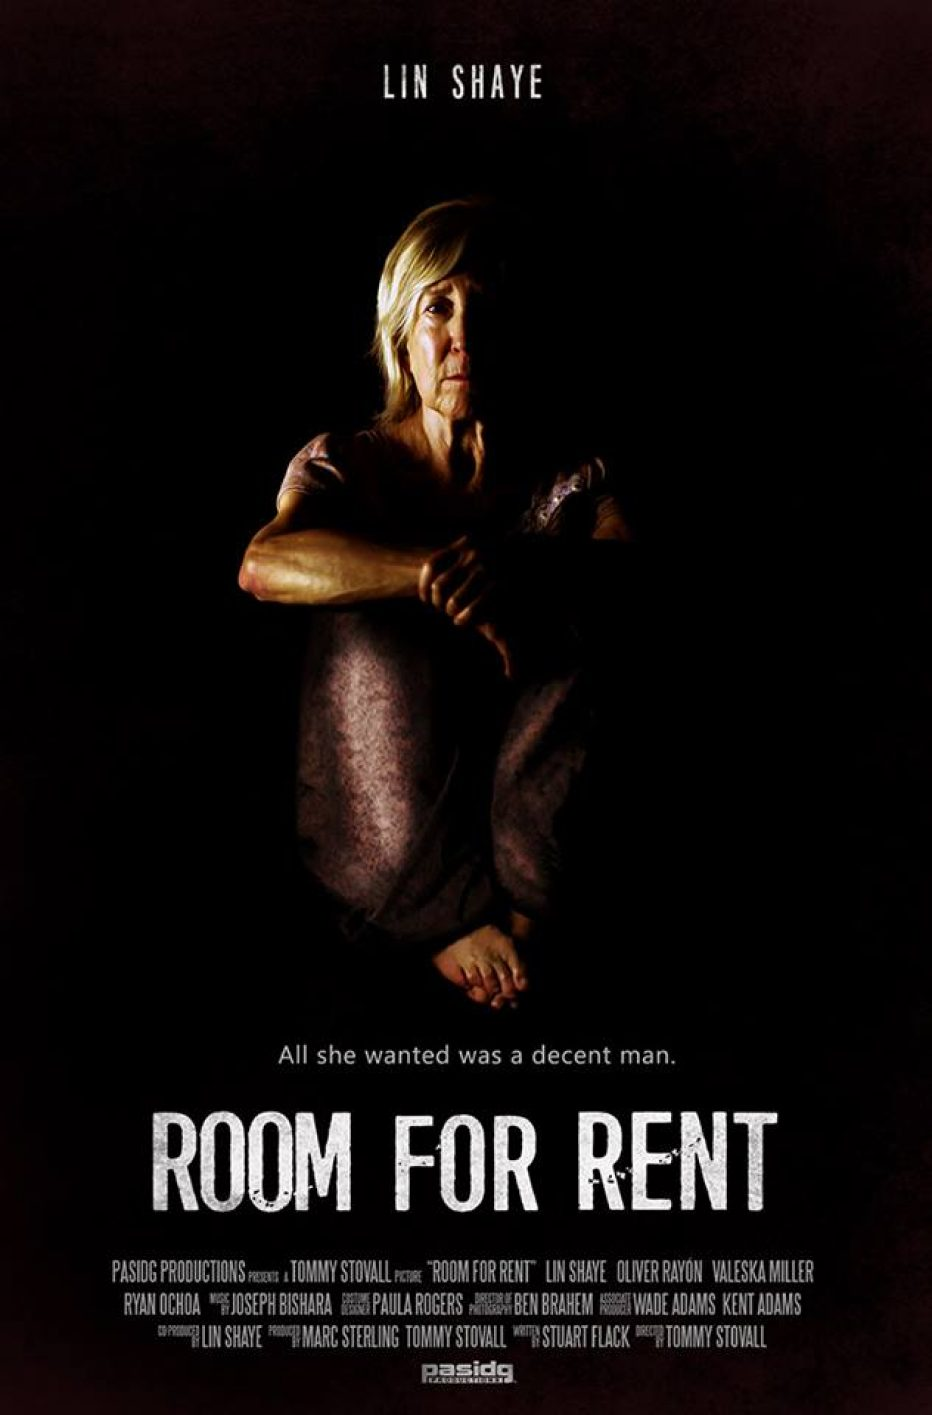 UNCORK'D HAS A ROOM FOR RENT WITH GENRE ICON LIN SHAYE FOR 2019